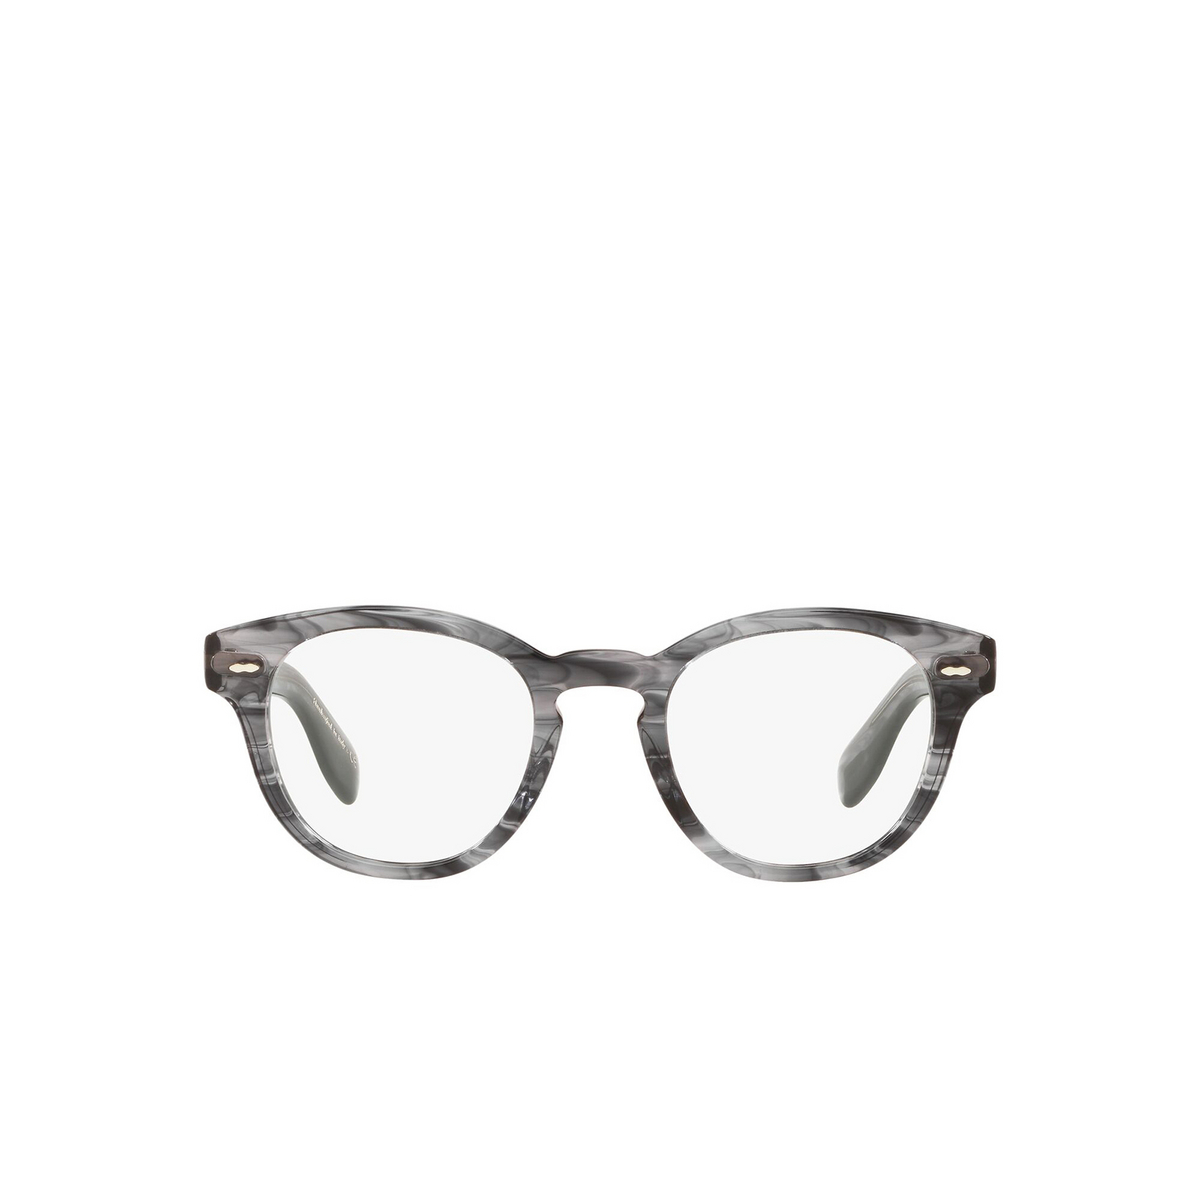 Oliver Peoples® Square Eyeglasses: Cary Grant OV5413U color Navy Smoke 1688 - front view.